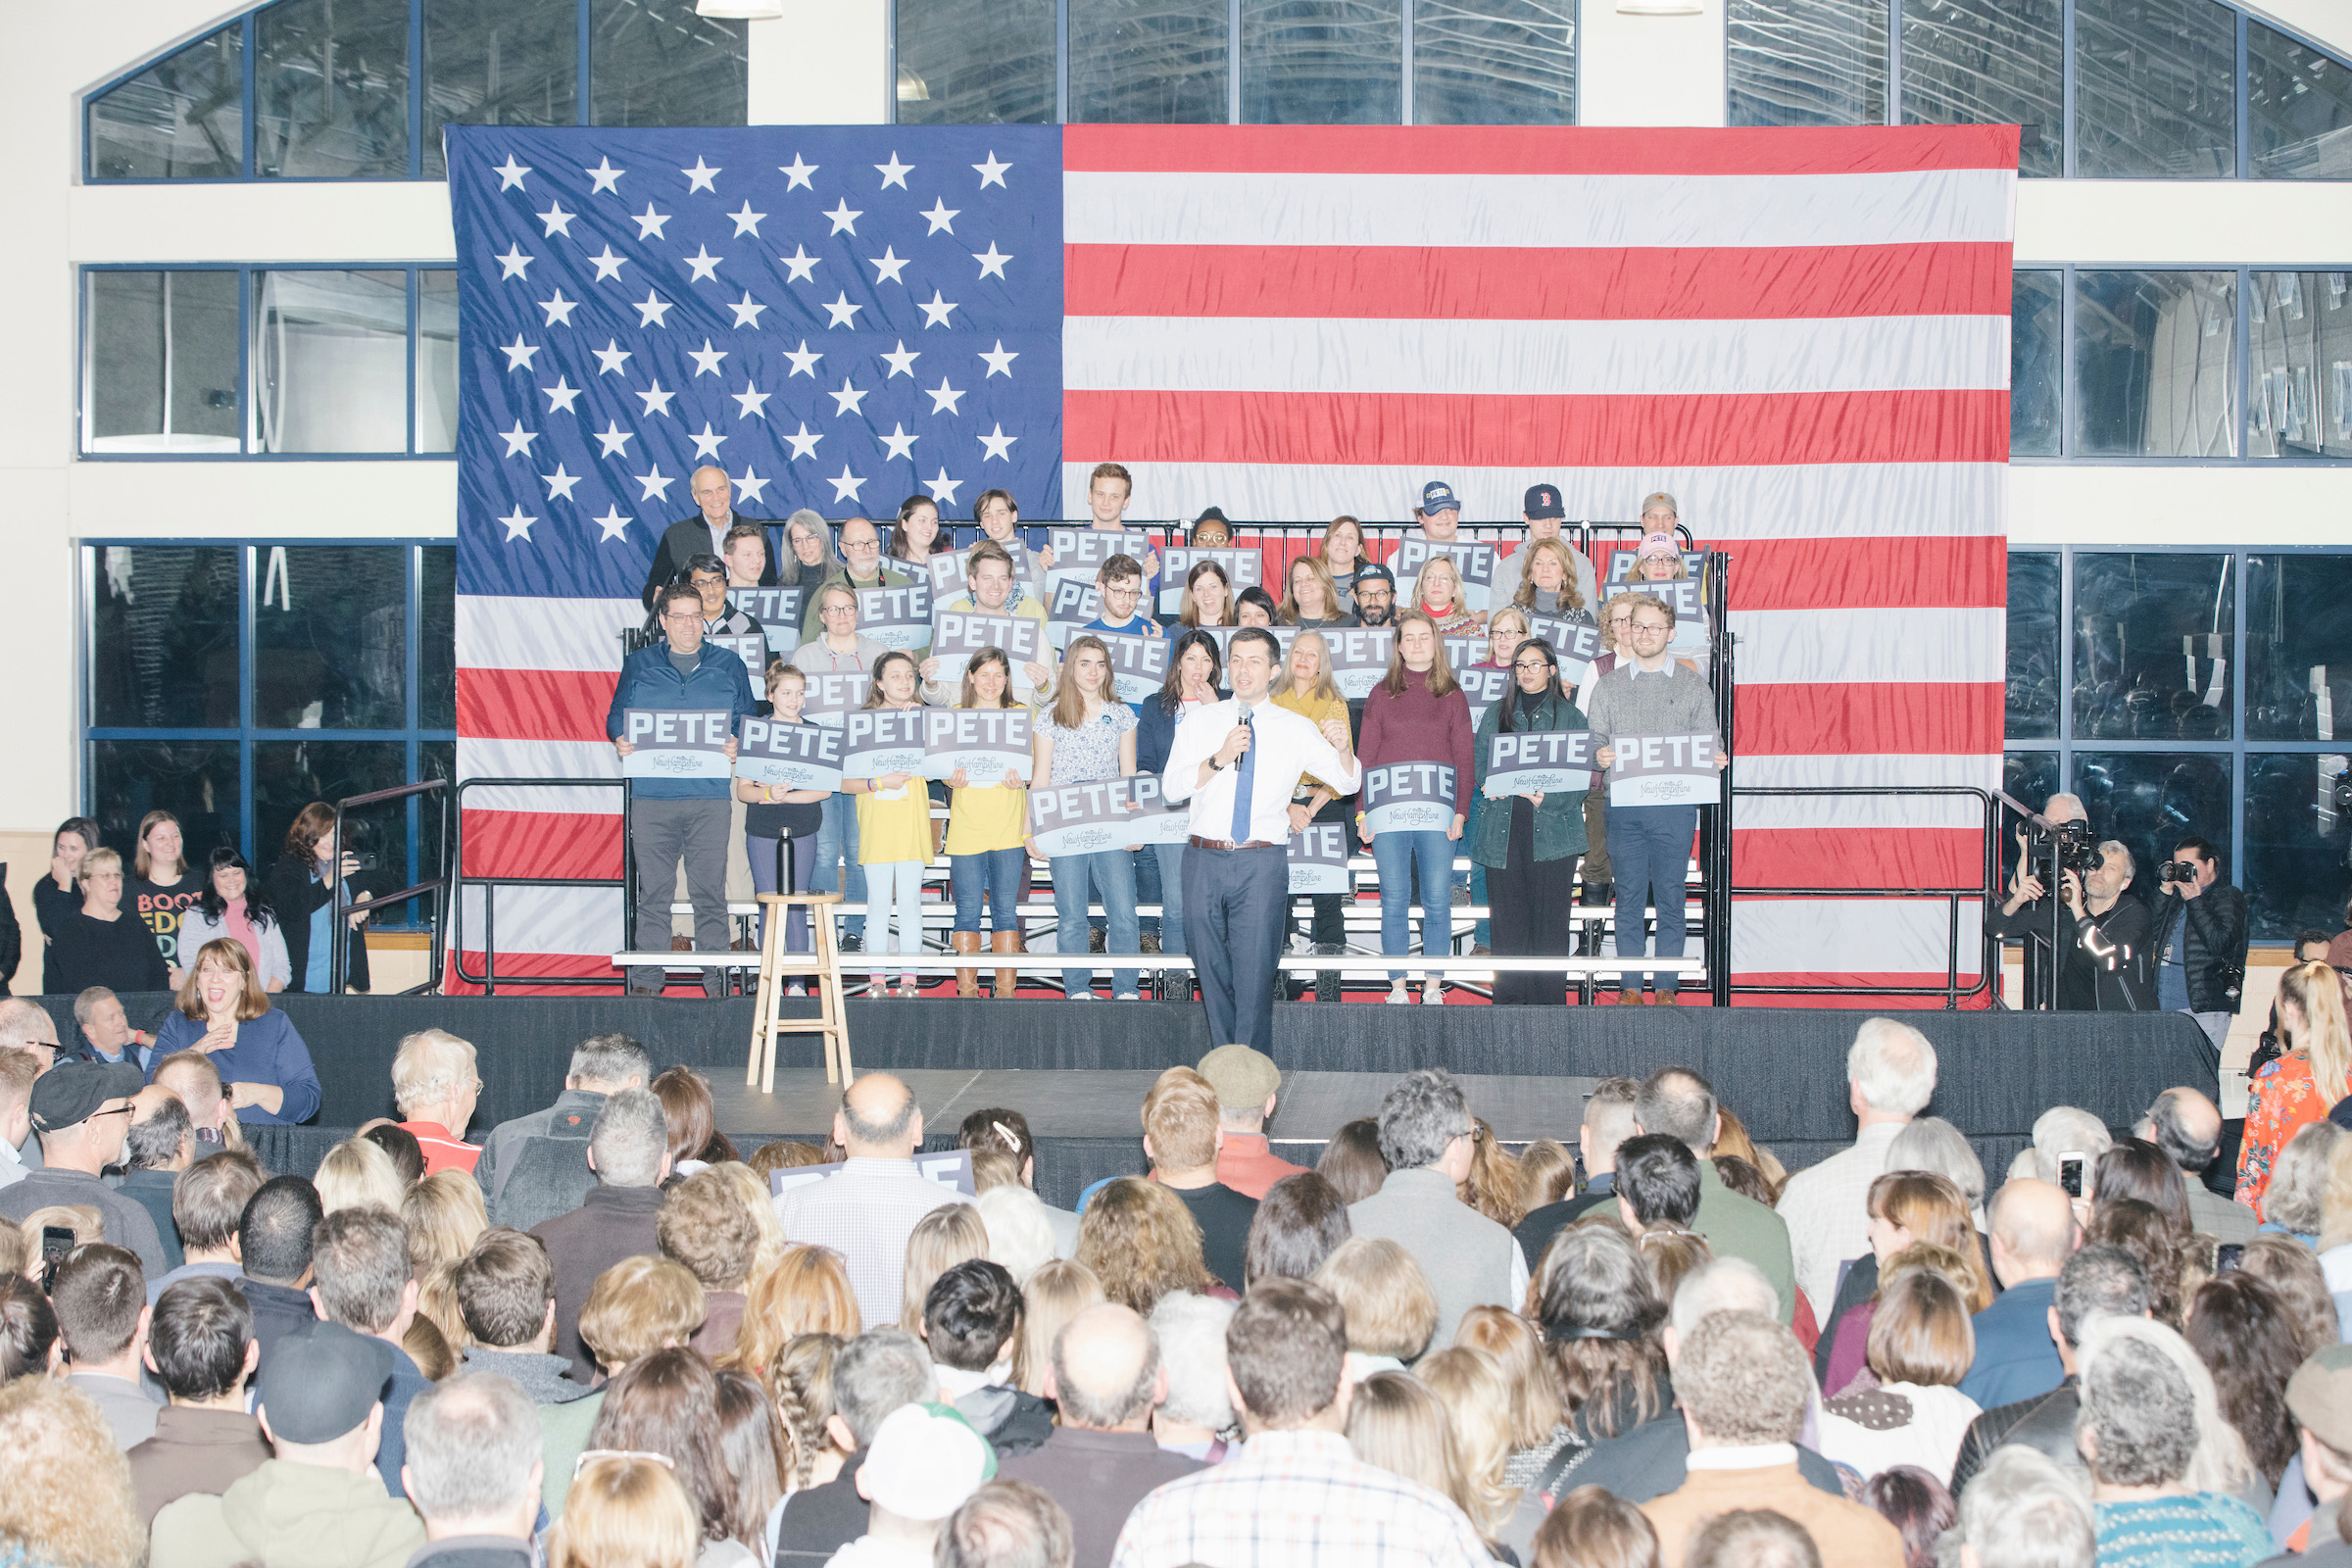 Pete Buttigieg speaks at a campaign rally at Exeter High School in Exeter, New Hampshire, on Feb. 10, 2020.